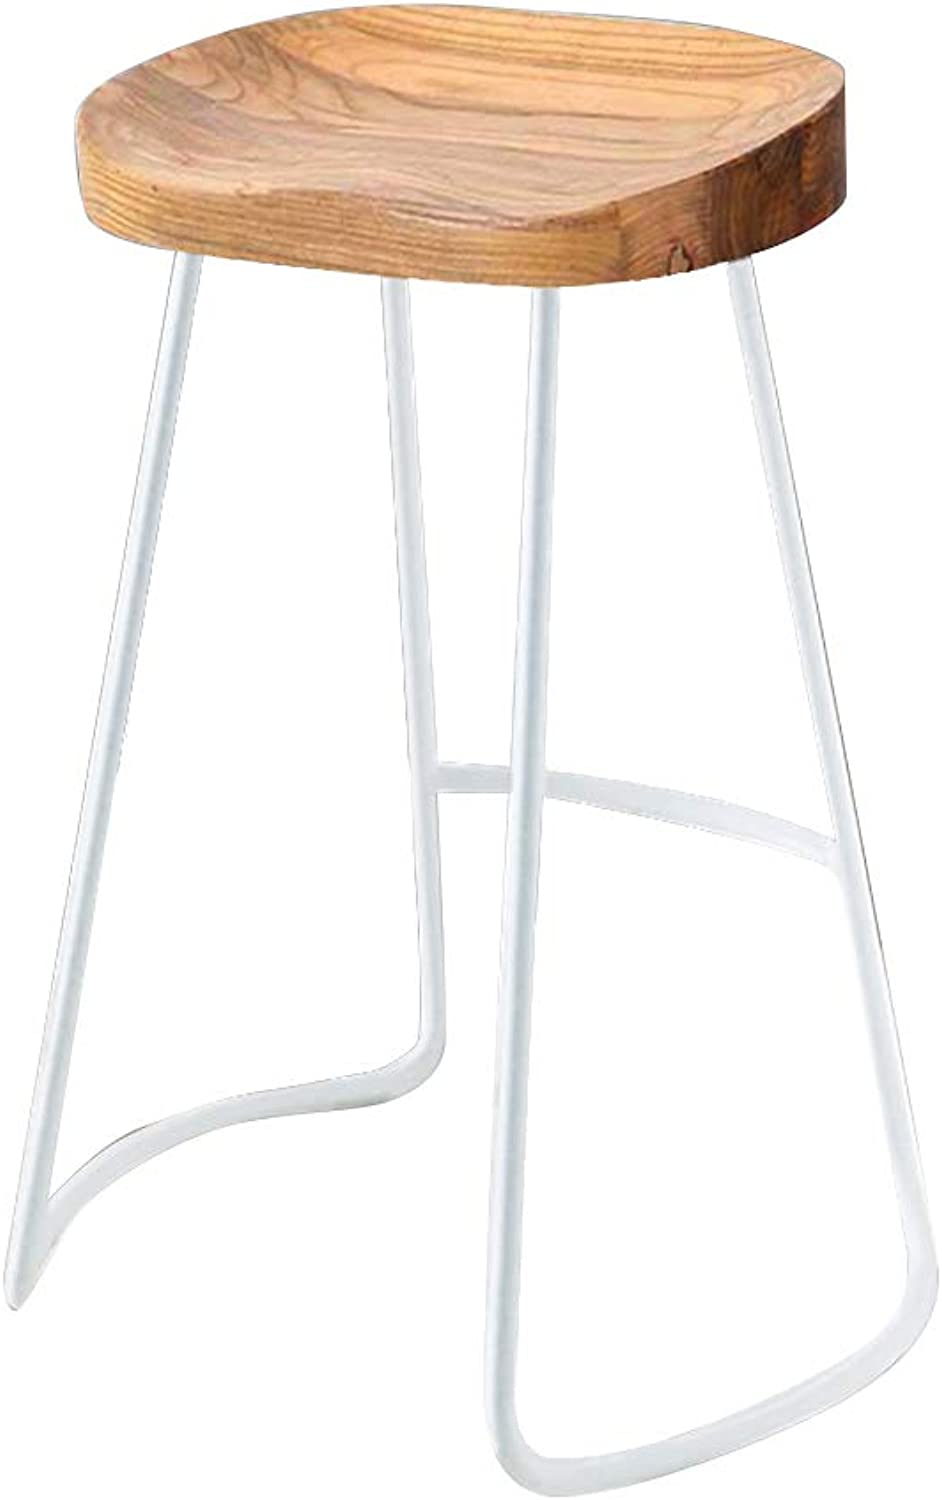 Wooden Stools Bar Stools Breakfast Dining Stools for Kitchen Metal Frame Solid Wood seat Maximum Load 120KG